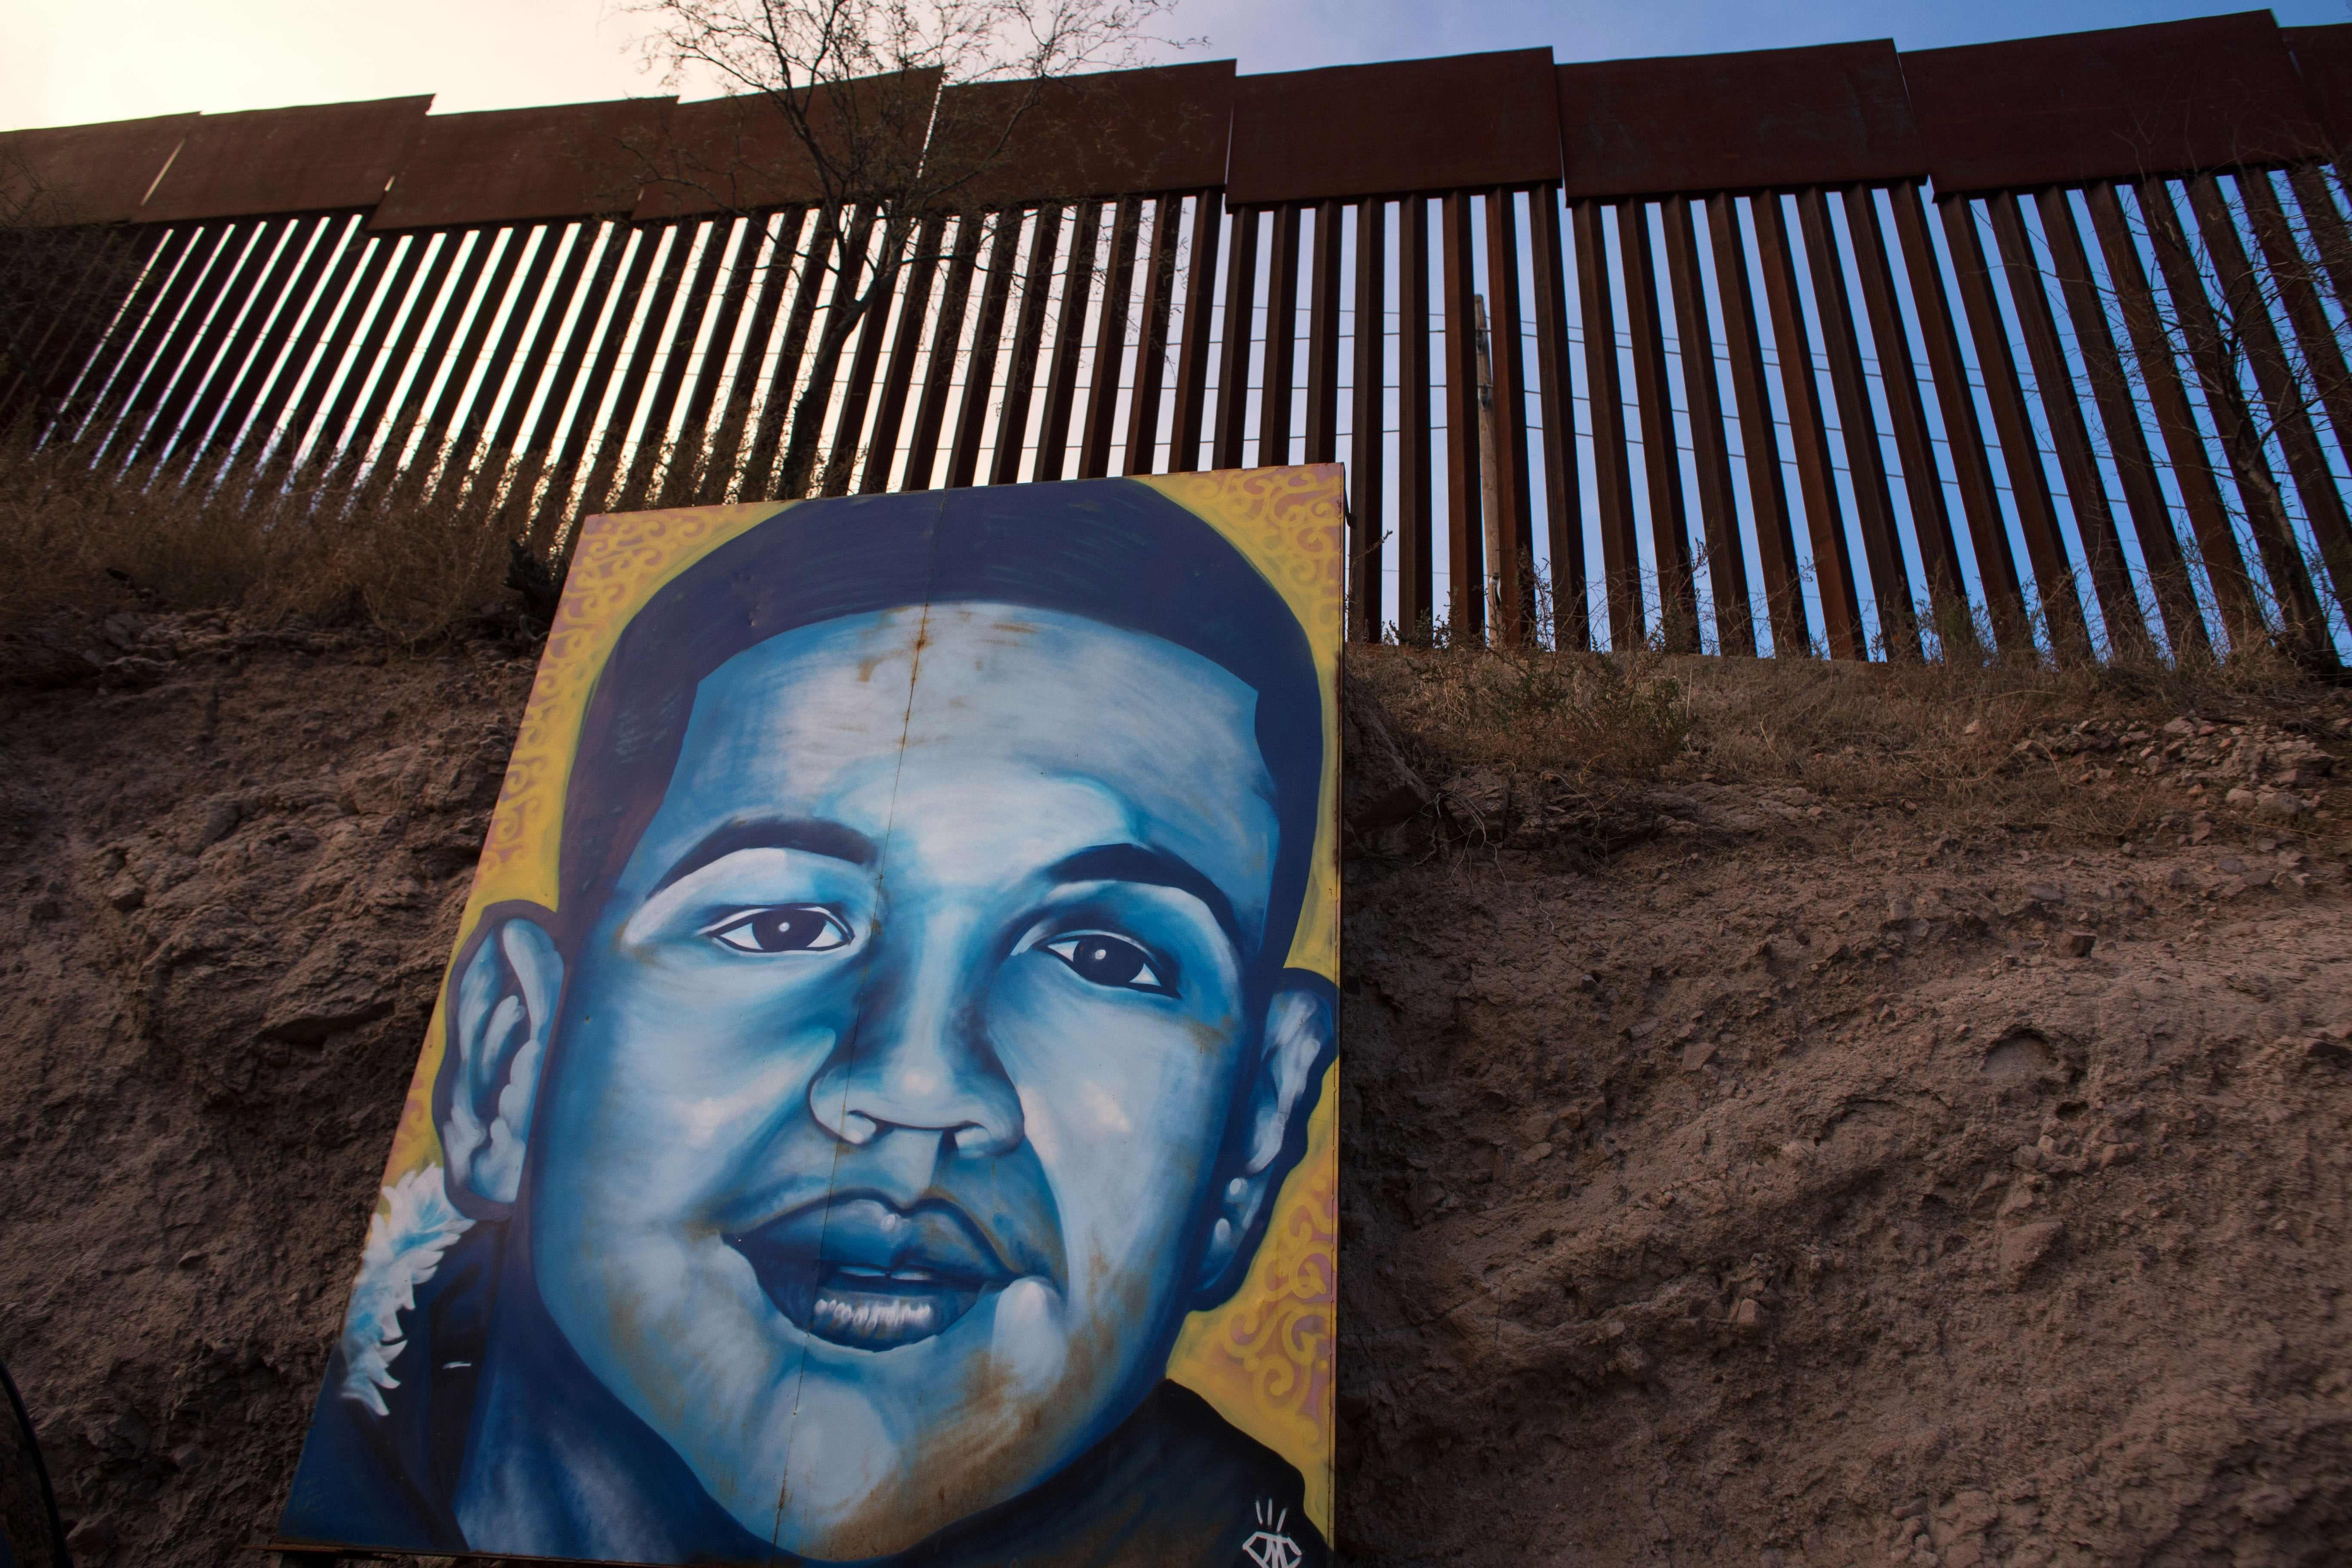 A large portrait of a teenage boy, painted in blues on a yellow background, leans against earth under a border fence.